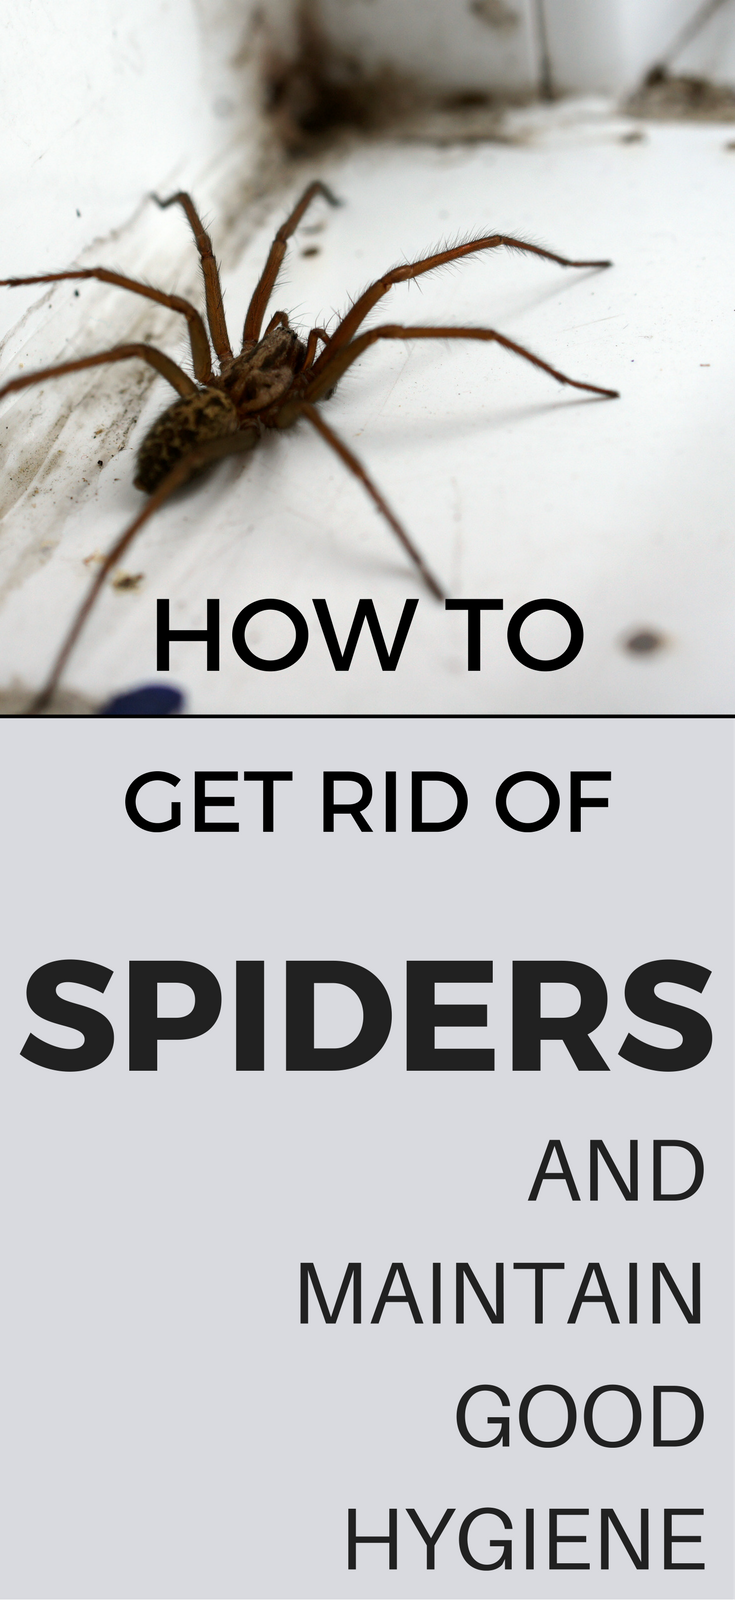 How To Get Rid Of Spiders And Maintain Good Hygiene